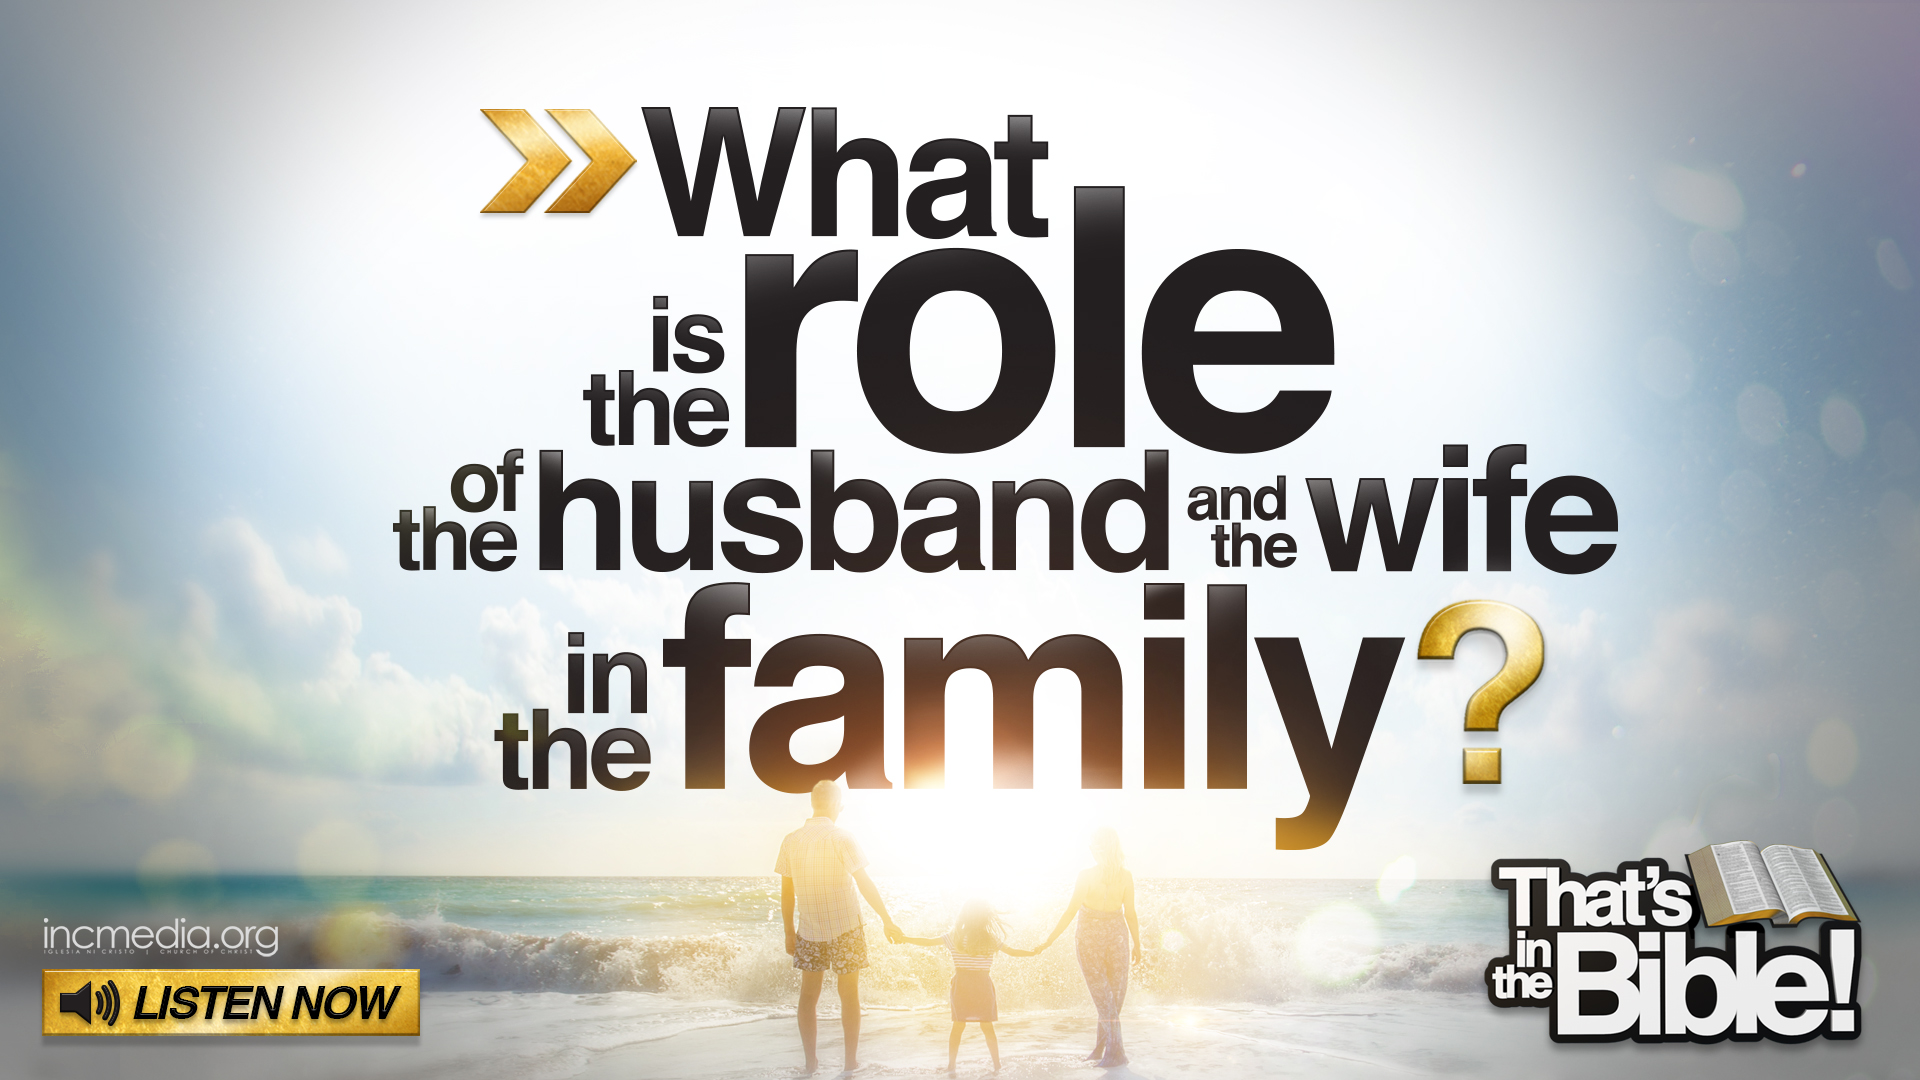 the role of husband and wife There are specific roles for the husband and wife to fulfill dod does a good job pointing out their respective roles and stations in the marriage.